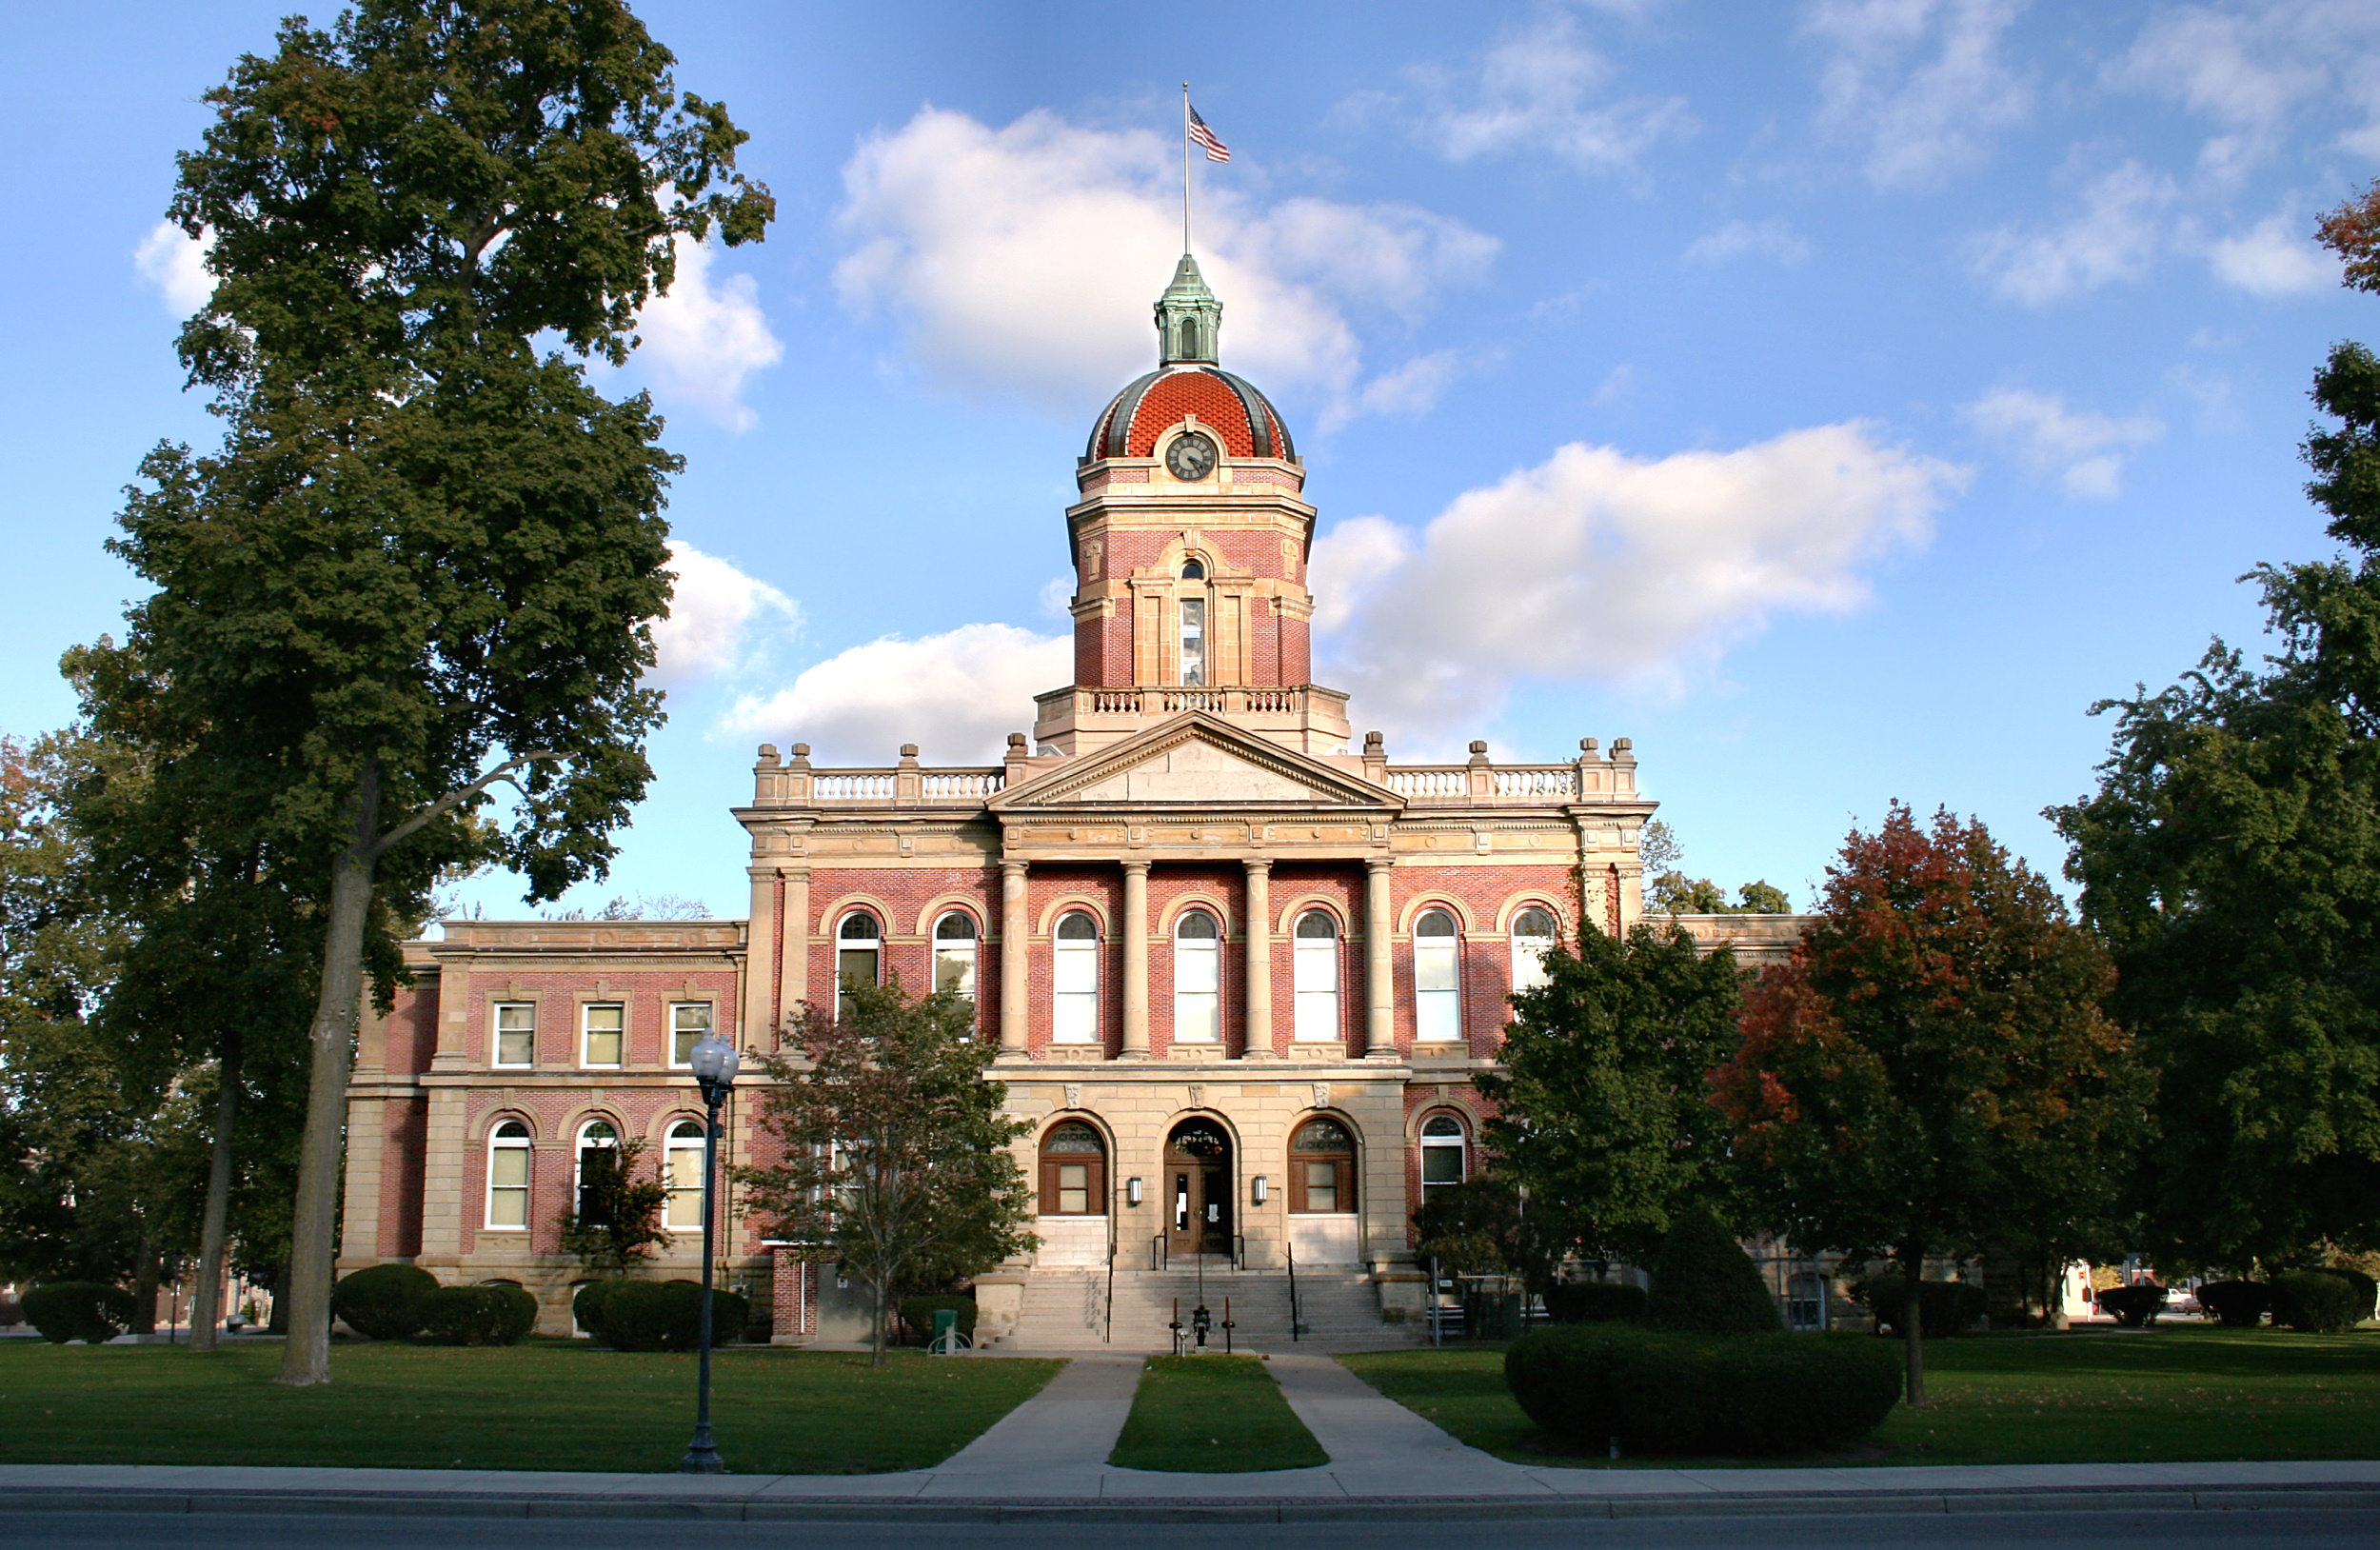 Elkhart County Courts Building